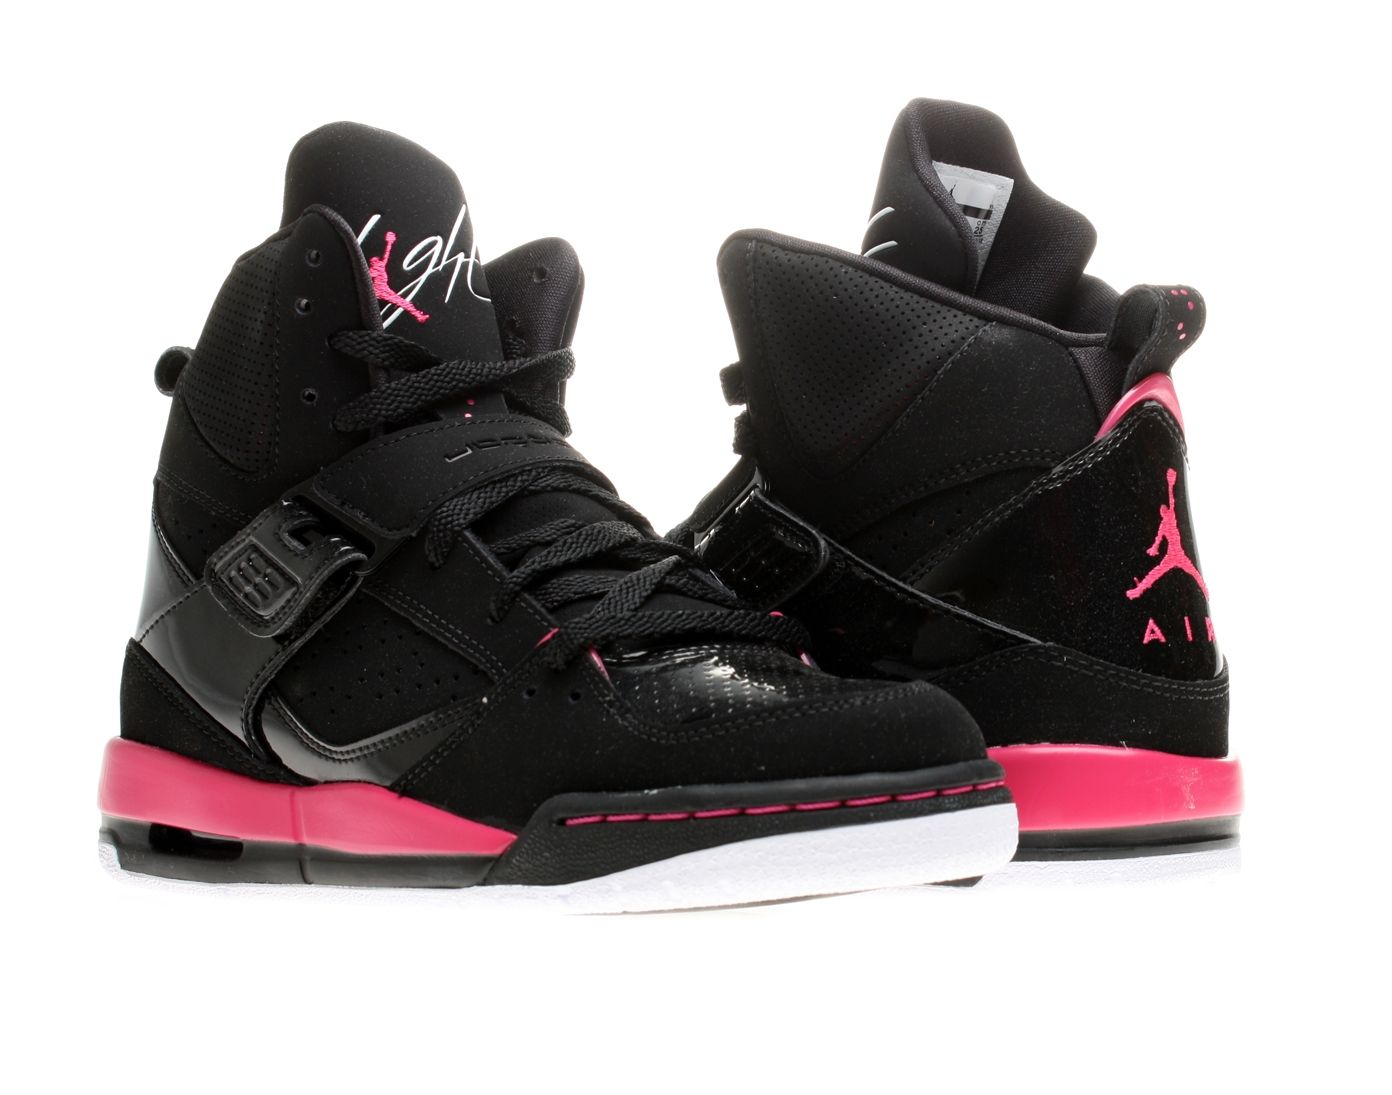 nike jordan shoes for girls | Nike Air Jordan Flight 45 High (GS) Girls